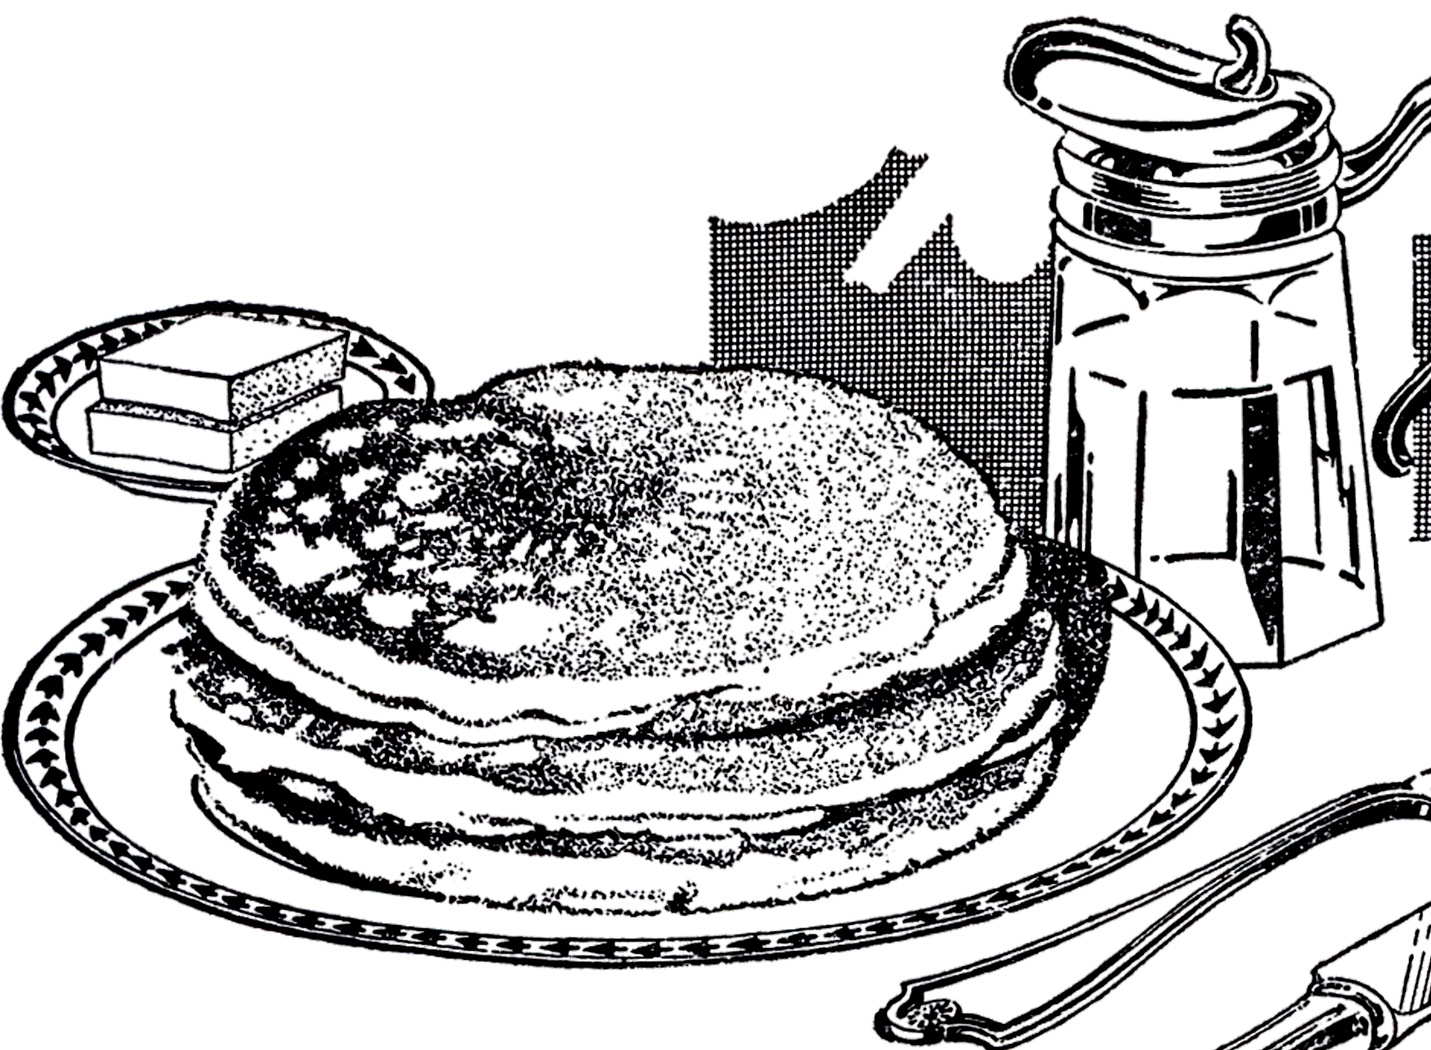 Breakfast clipart vintage. Pancake image the graphics